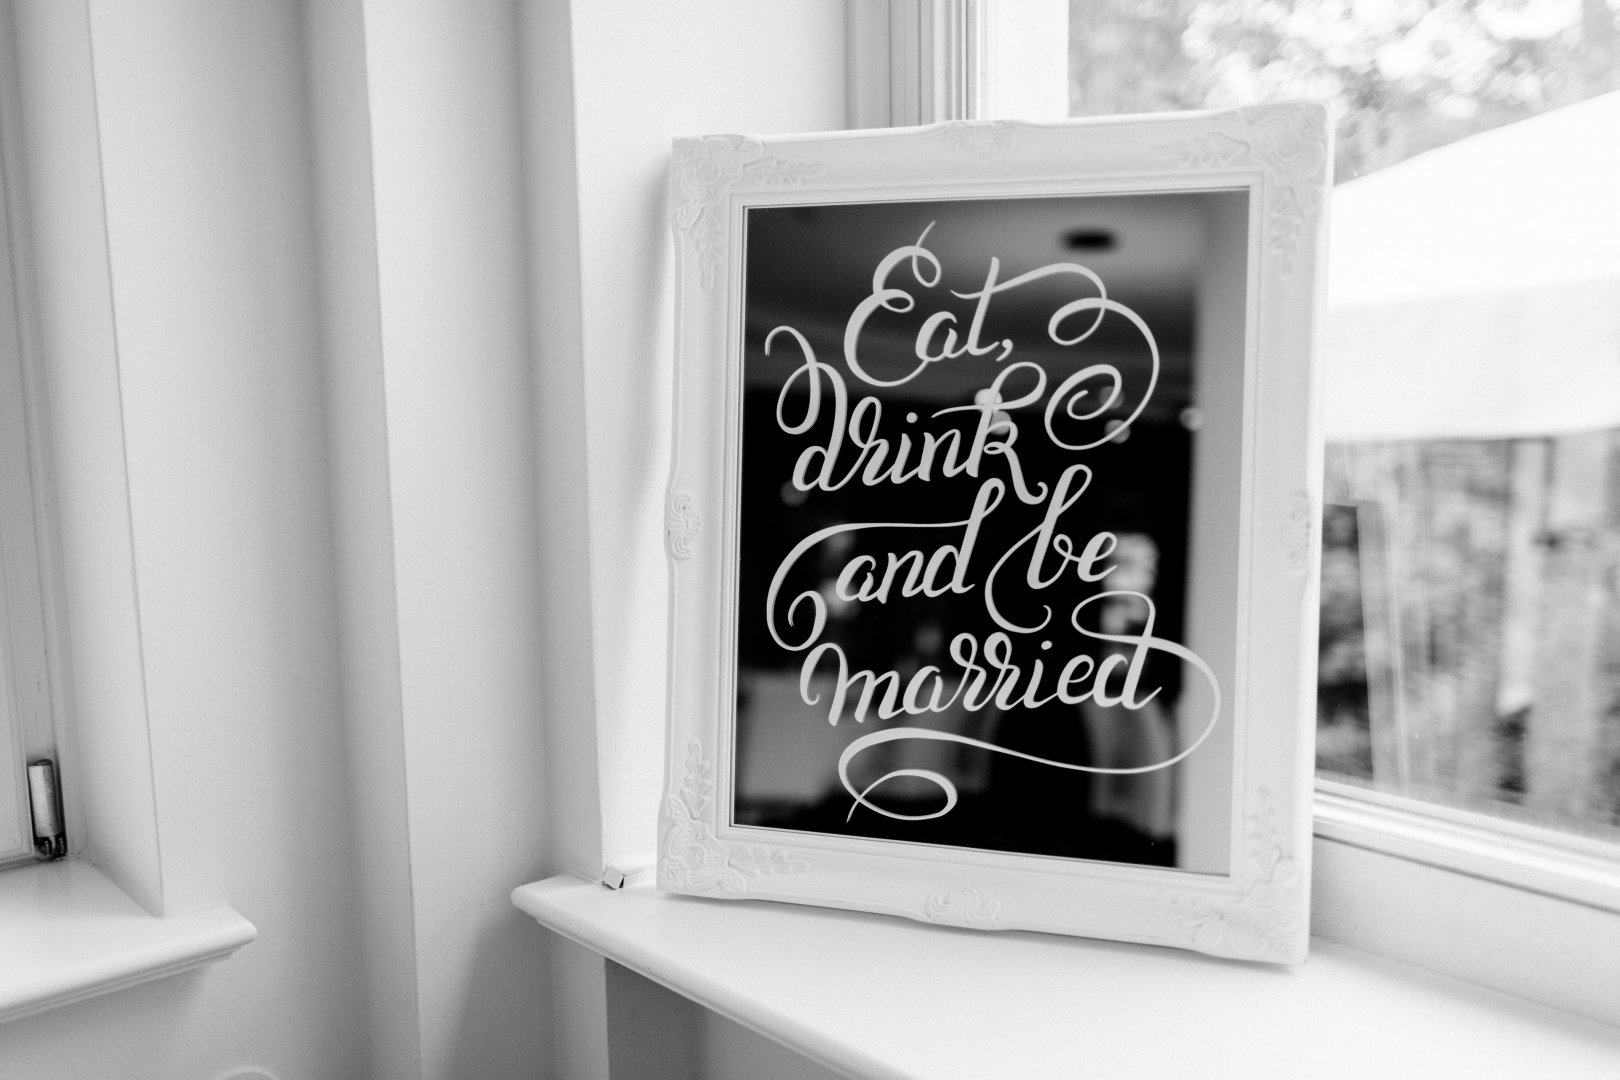 White Photograph Black Black-and-white Text Font Calligraphy Room Monochrome photography Photography Picture frame Art Style Interior design